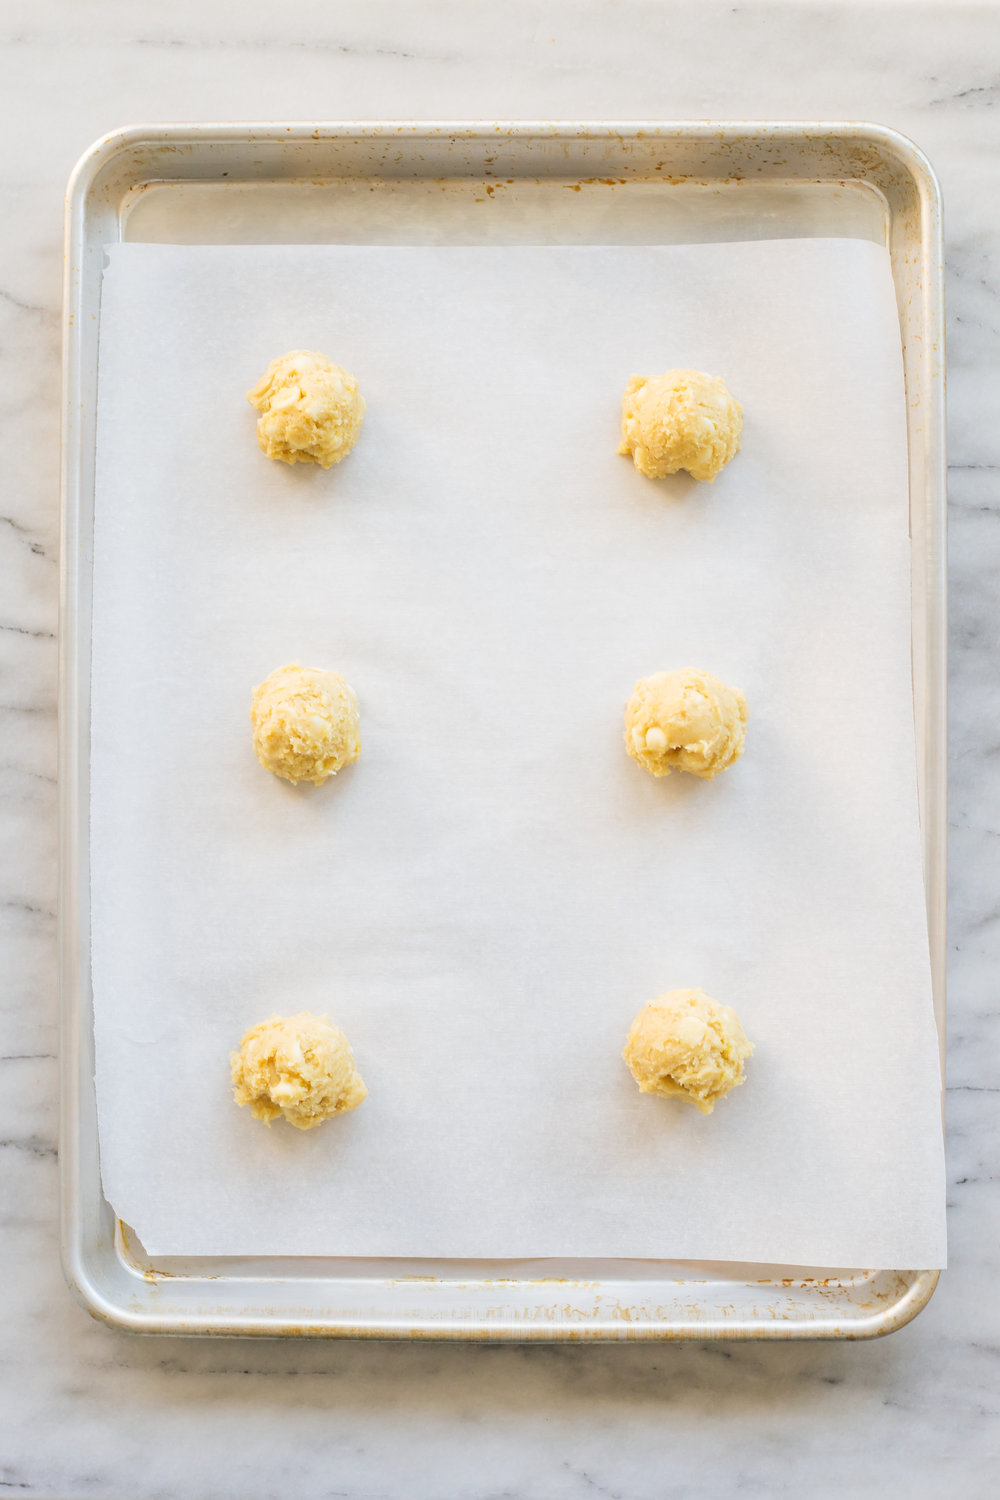 lemon_white_chocolate_chip_carrdamom_cookies-6.jpg